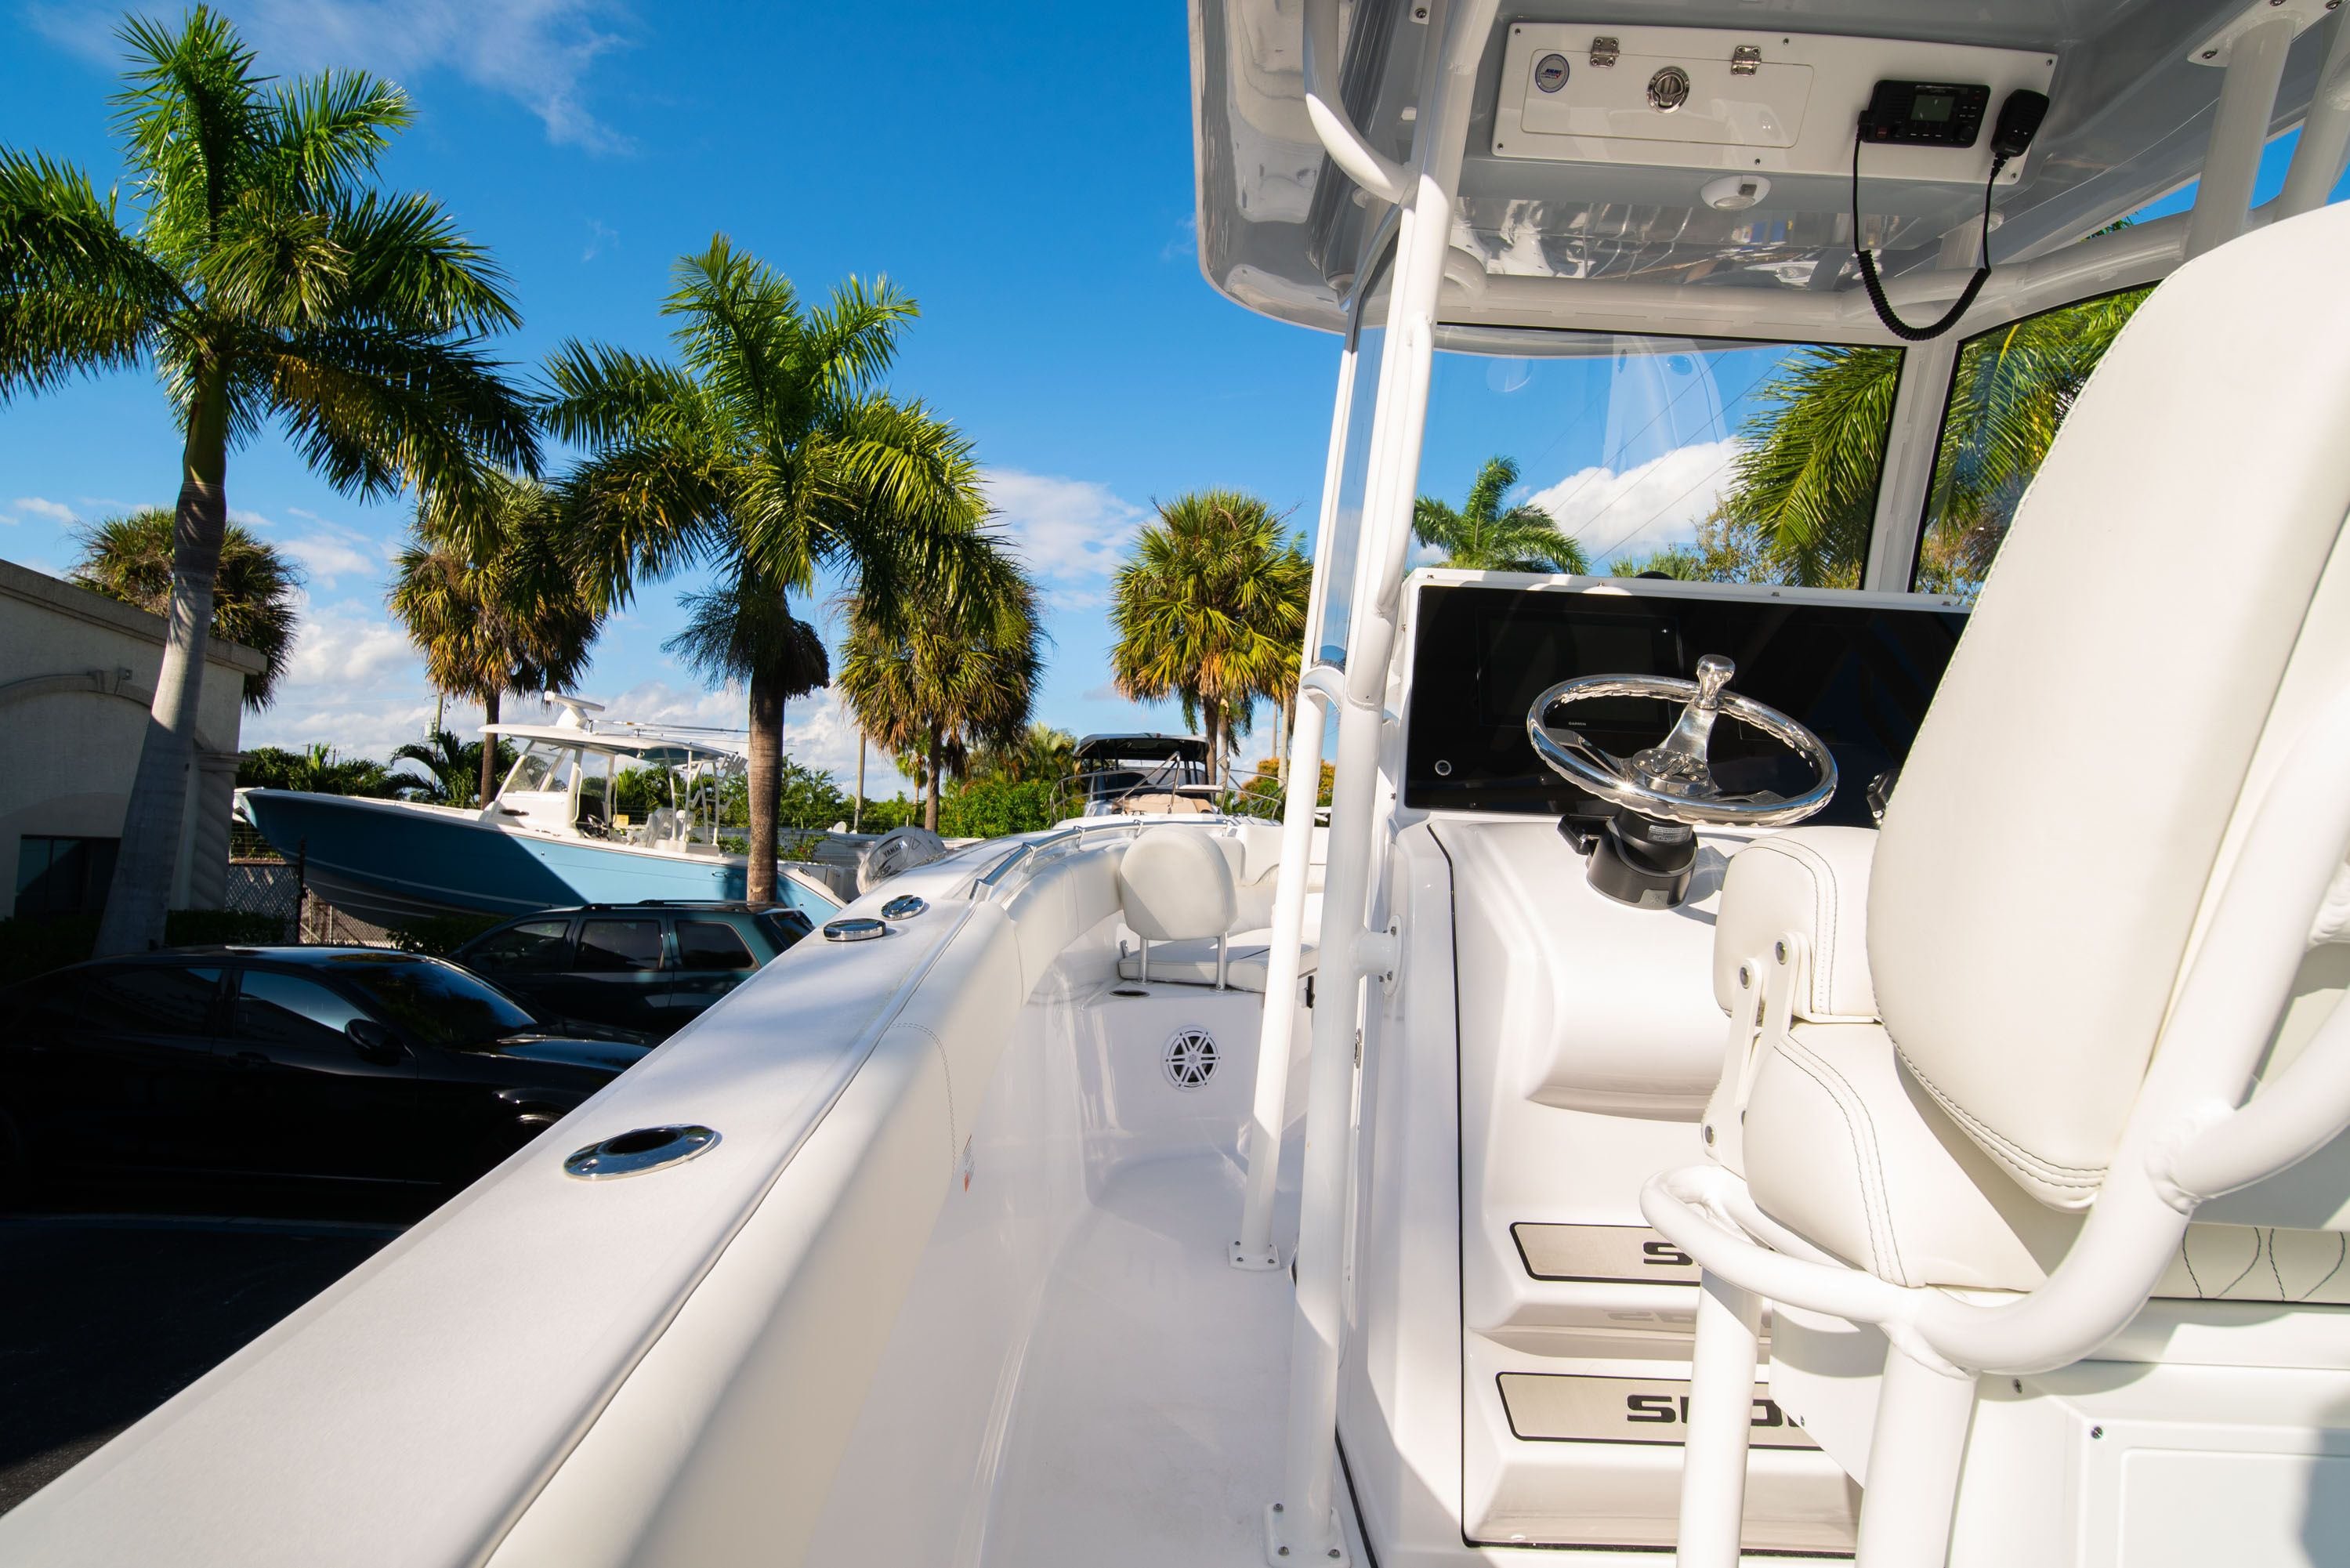 Thumbnail 26 for New 2020 Sportsman Open 252 Center Console boat for sale in West Palm Beach, FL